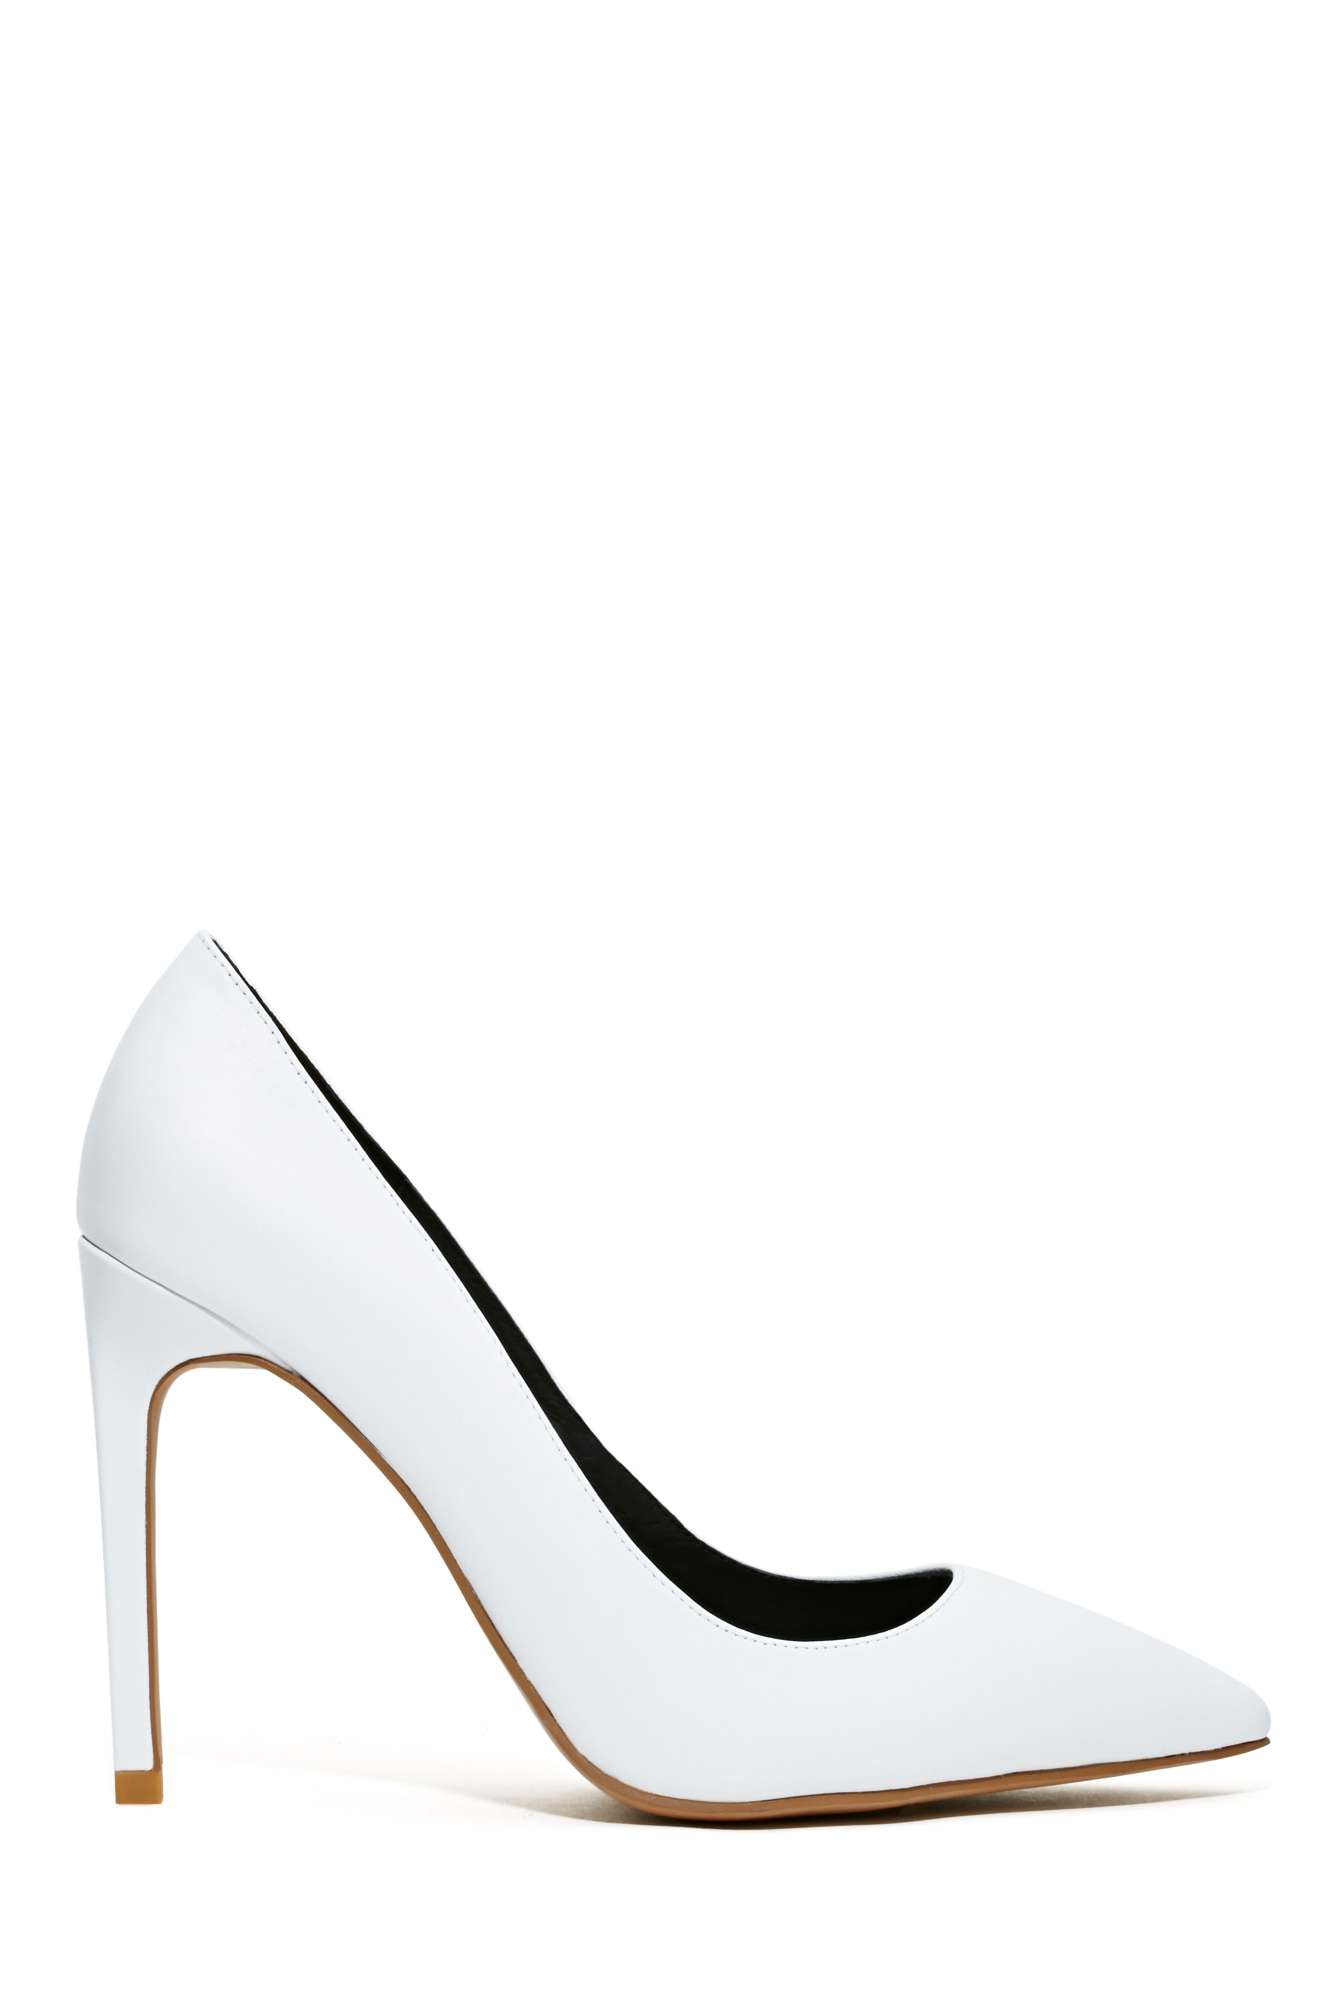 Jeffrey campbell dulce pump